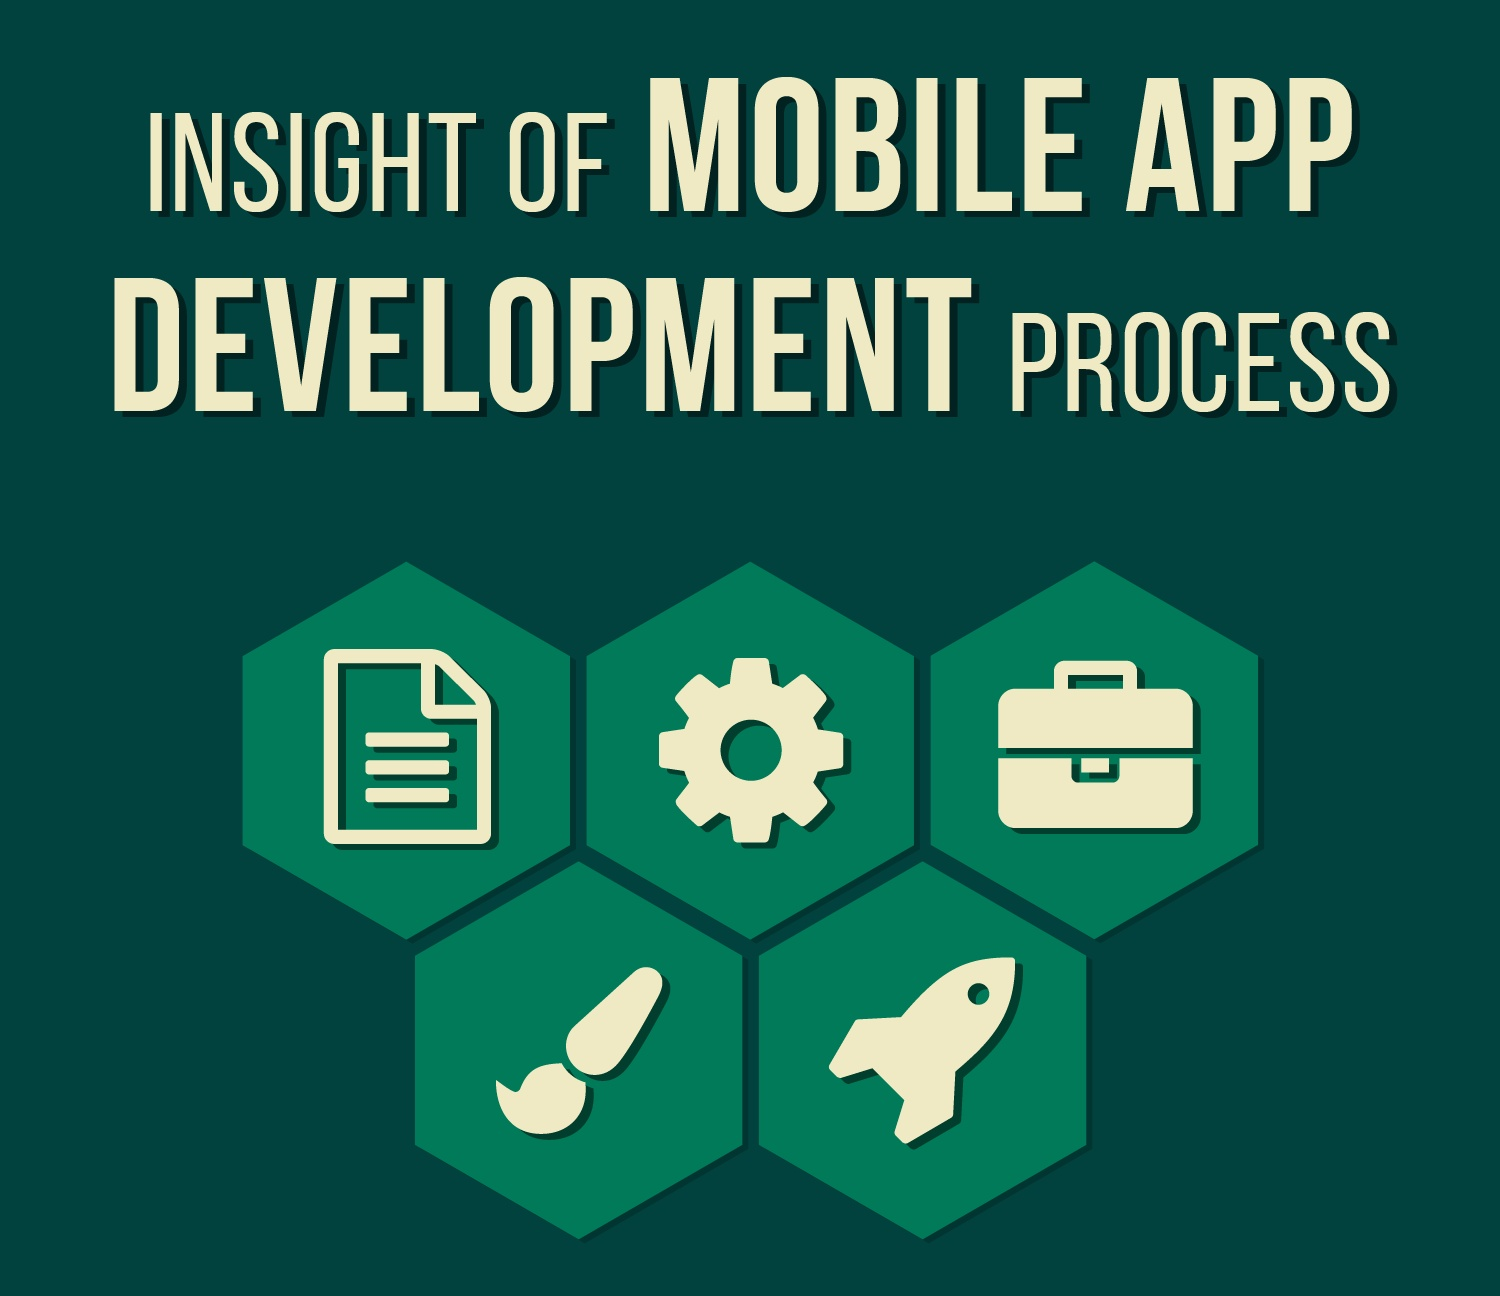 Insight of Mobile App Development Process